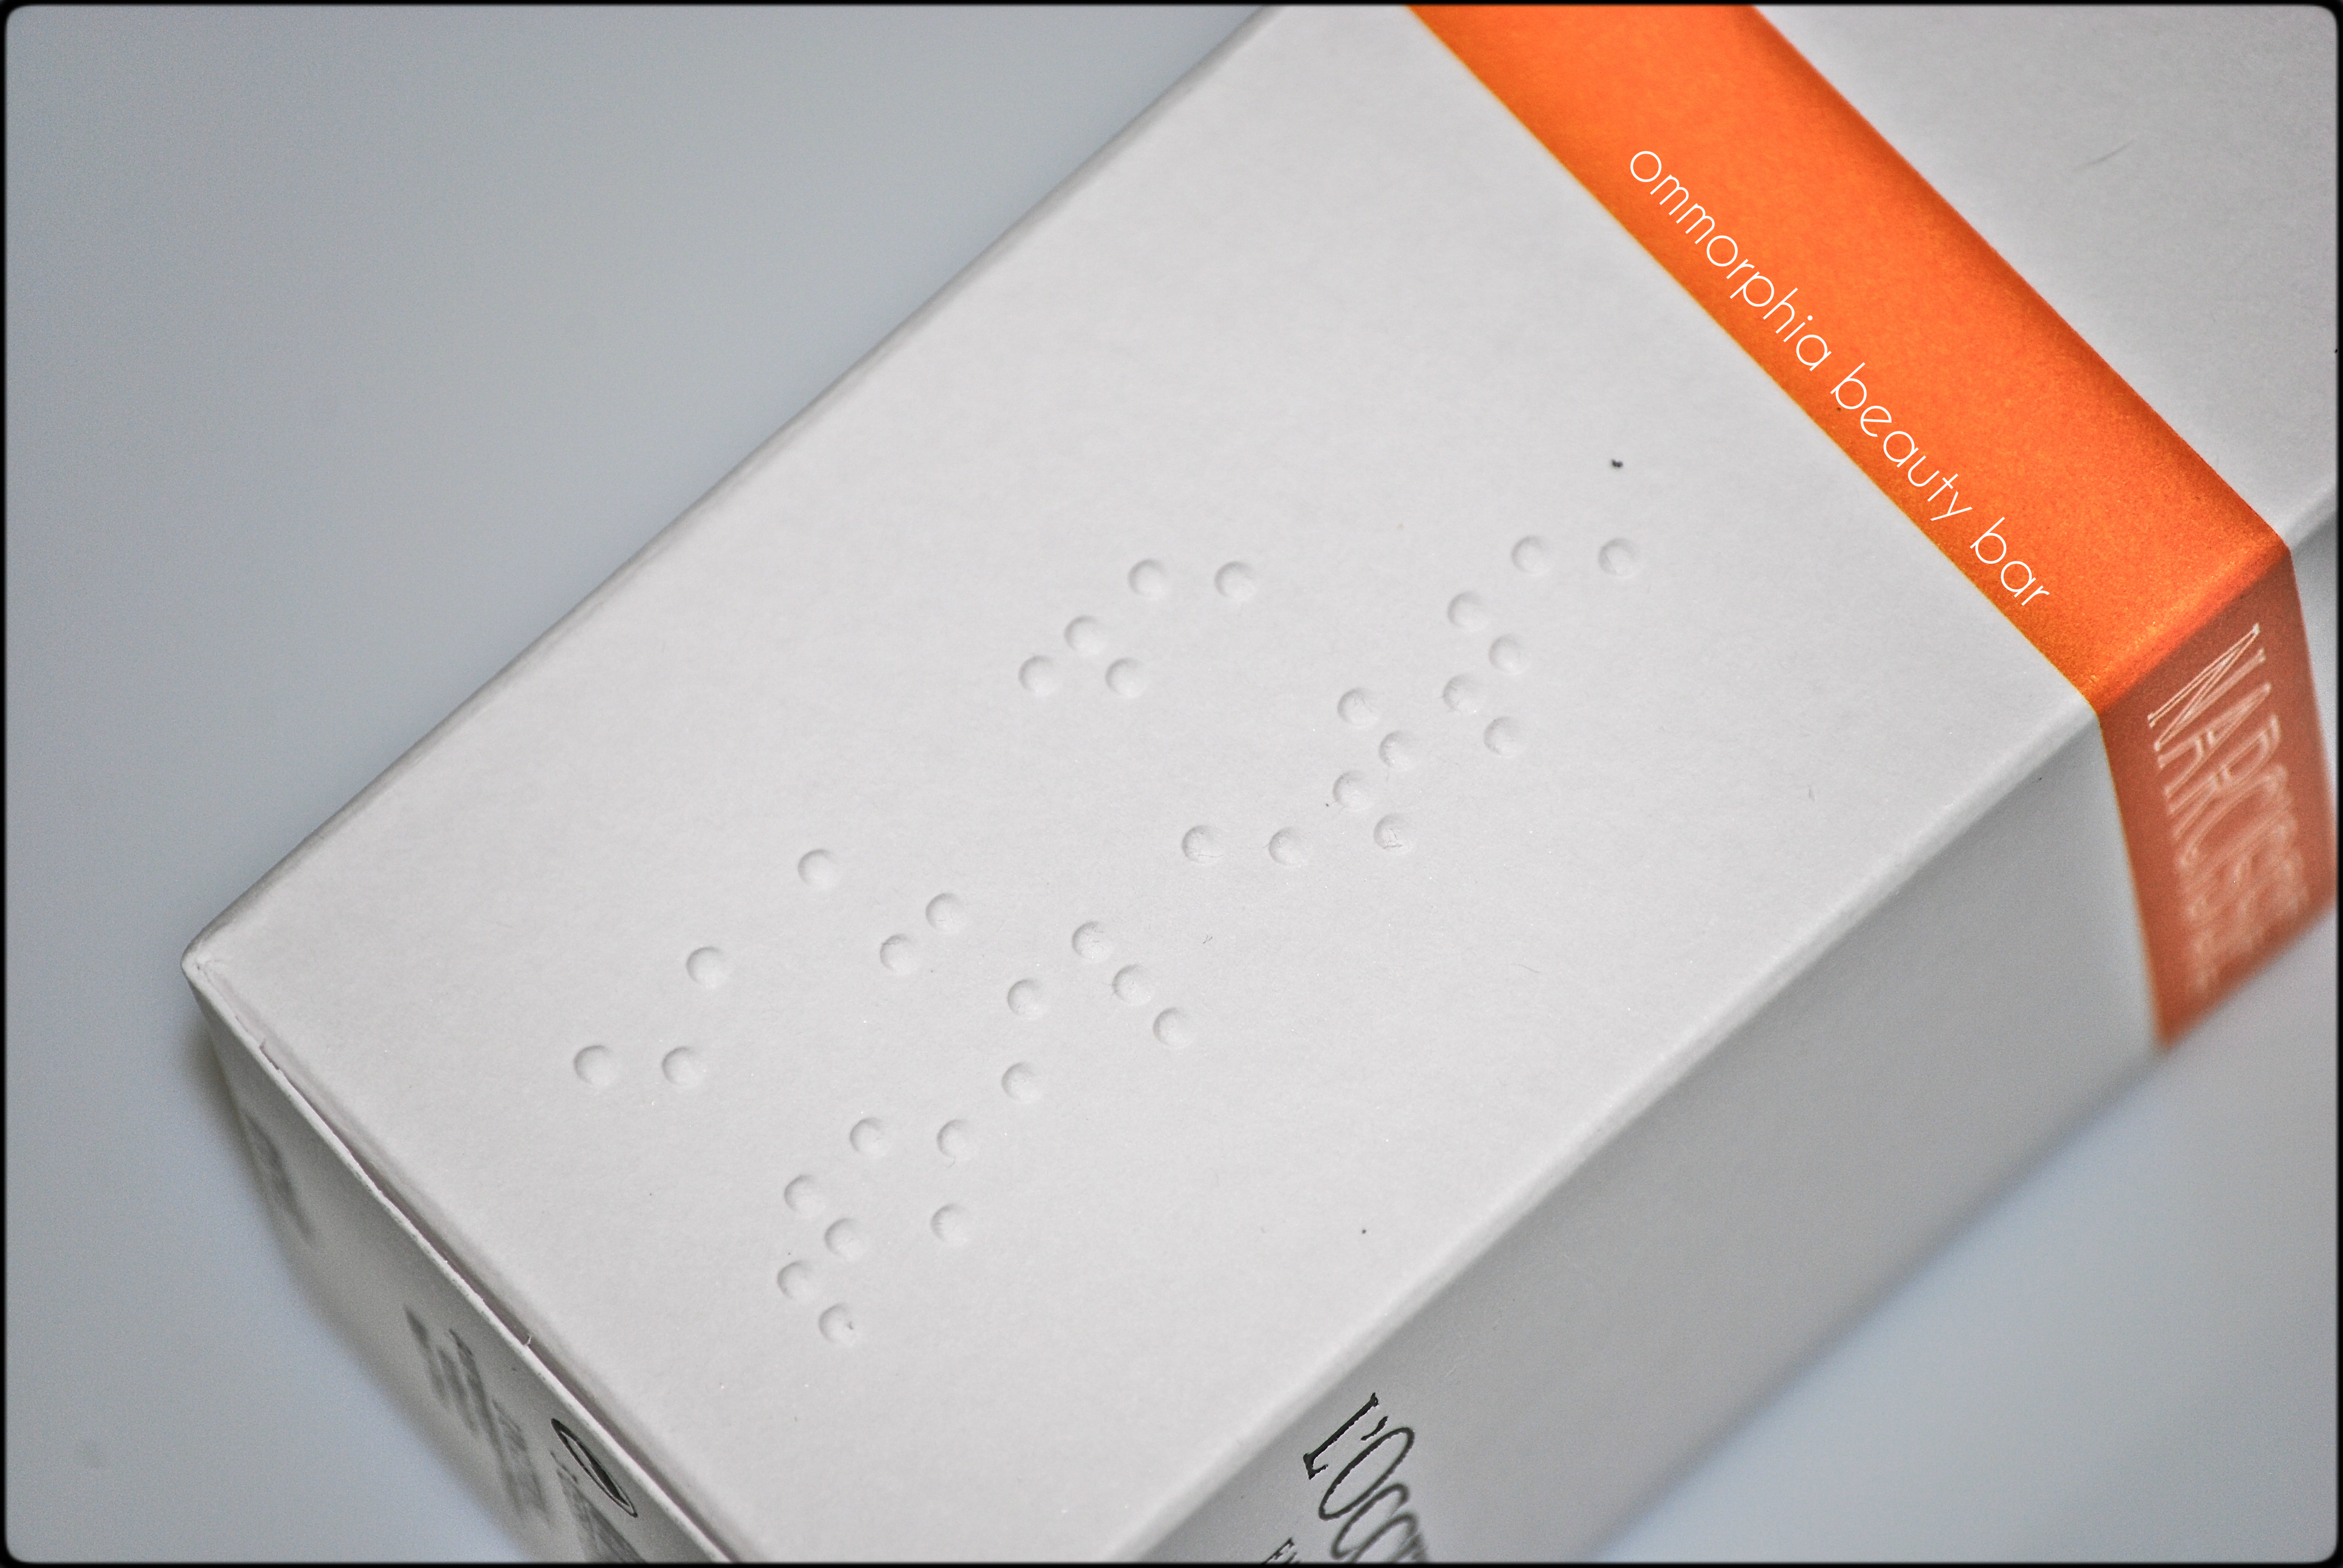 Braille on L'Occitane Products